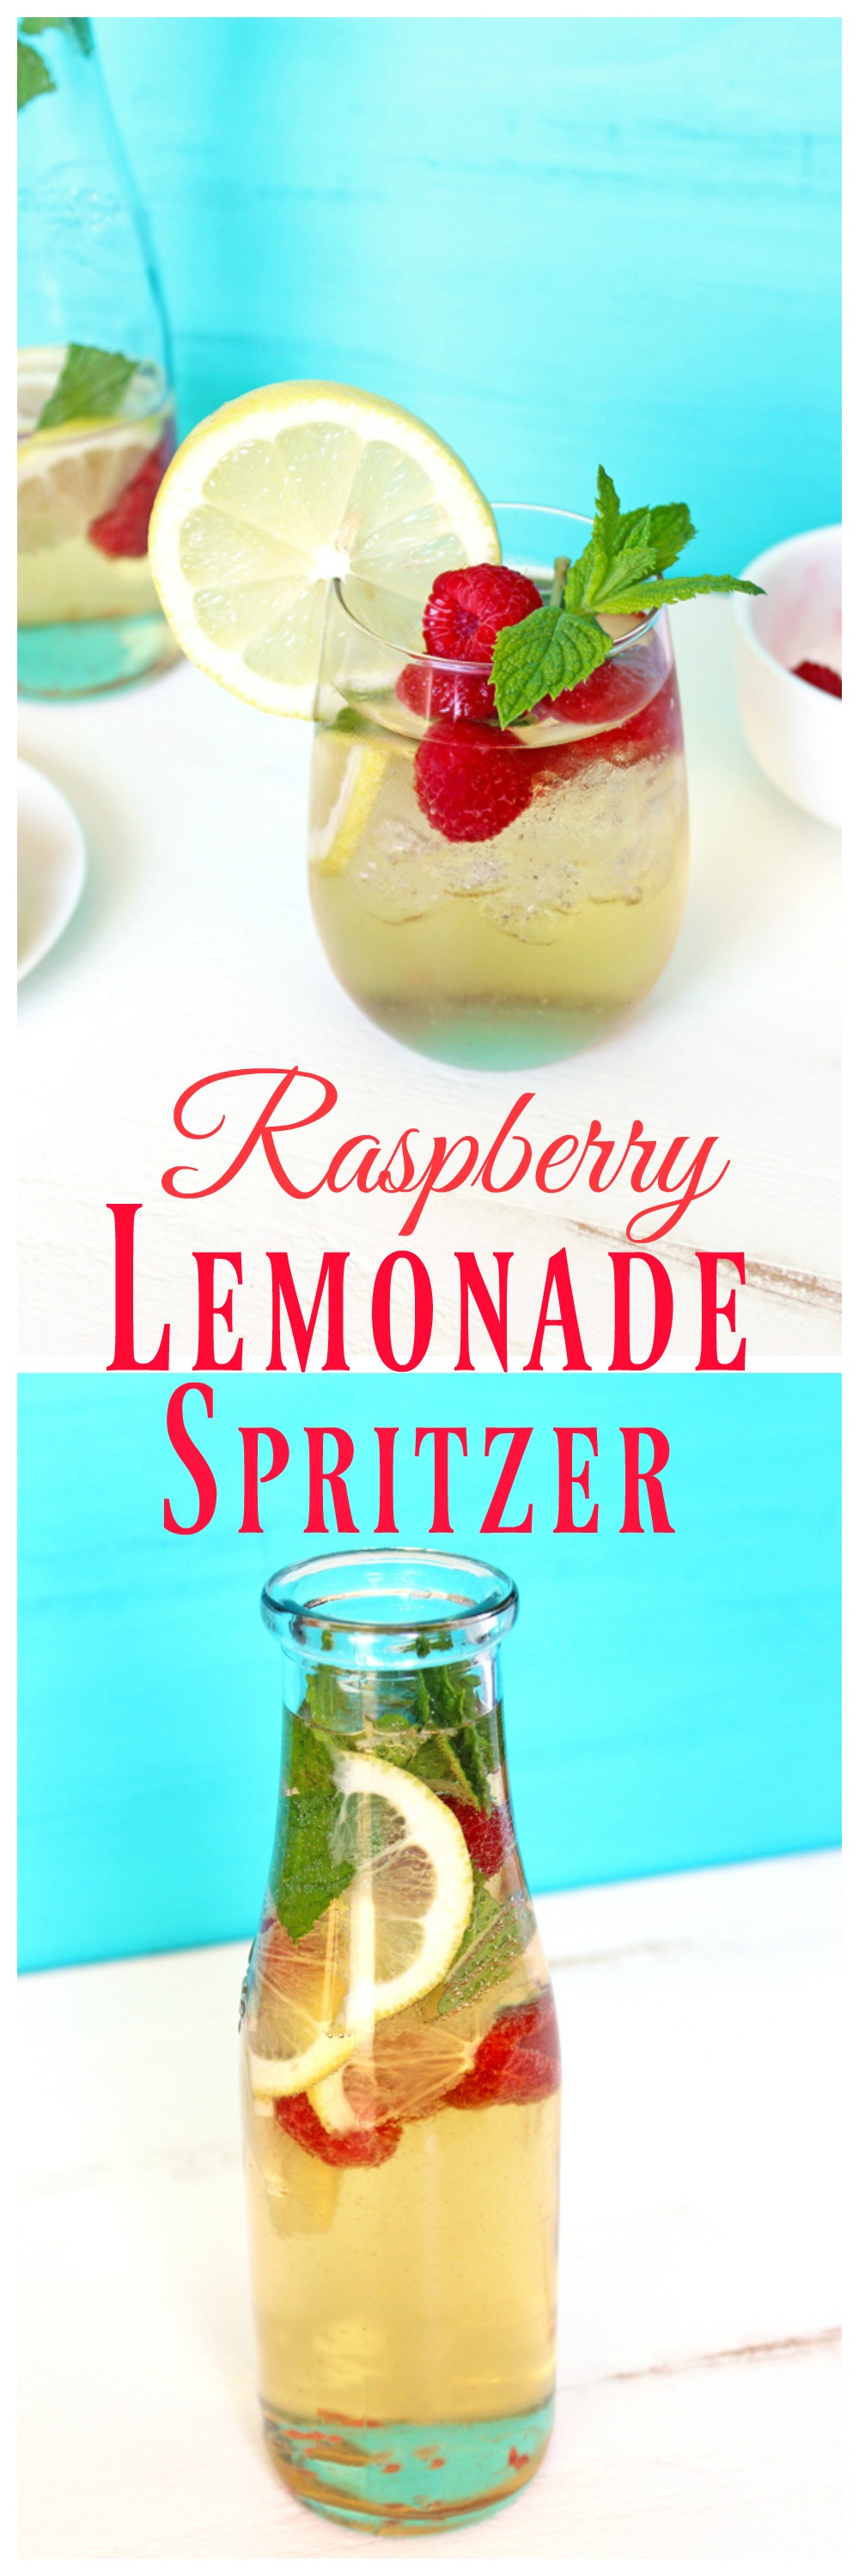 Raspberry Lemonade Spritzer - Refreshing and cool; a simple no-frills classic meant for moms or parents. It's 5o'clock somewhere! NeuroticMommy.com #momlife #vegan